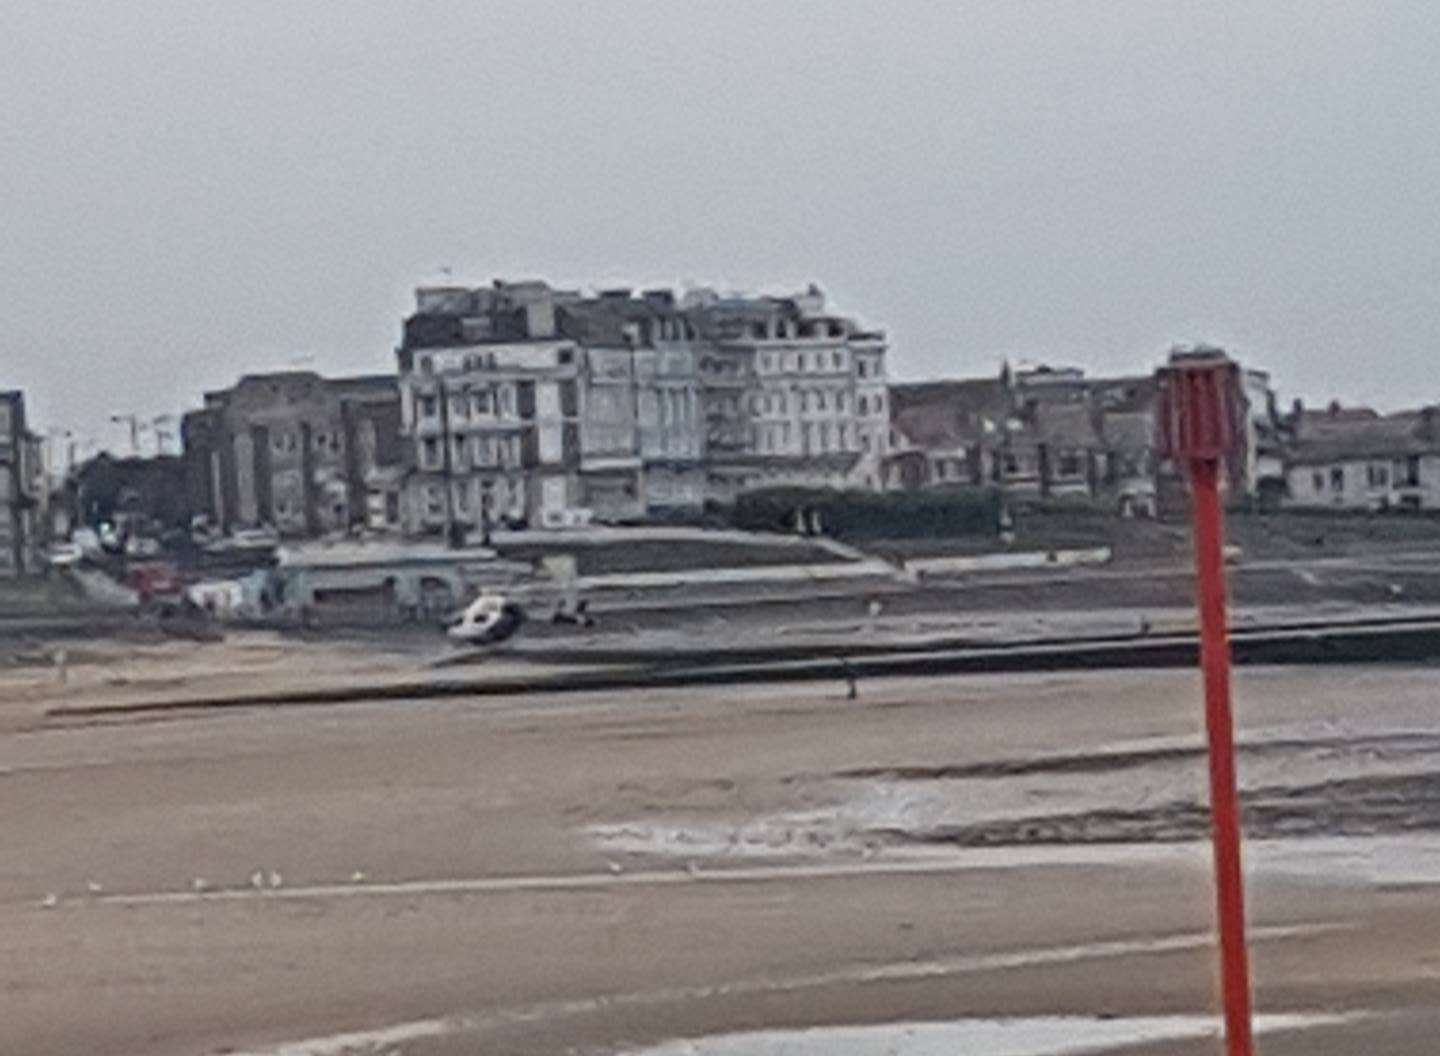 The air ambulance landed at Margate seafront. Picture: Nadine Fullarton